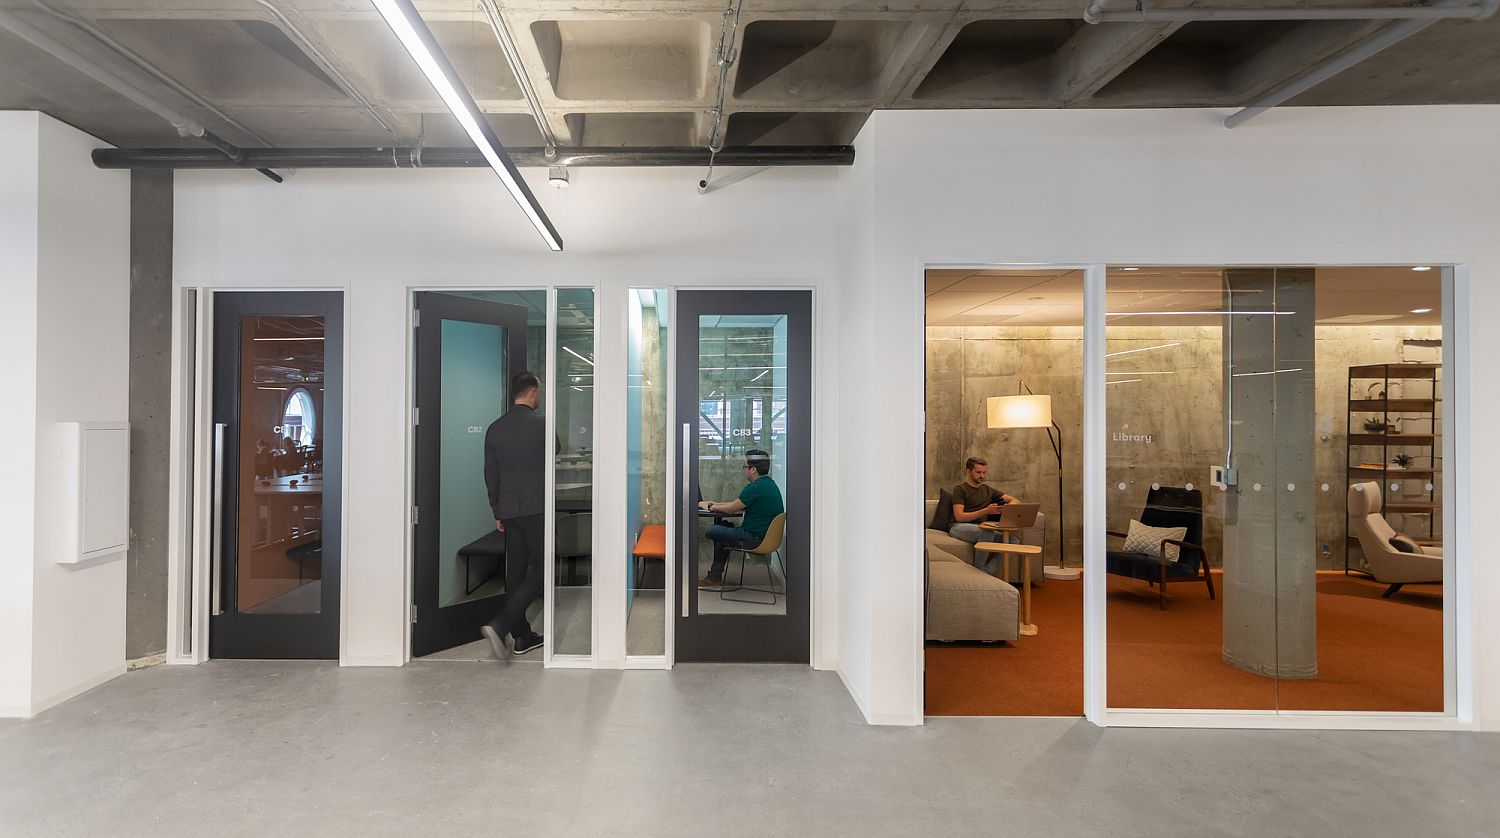 1565874914 666 spacious contemporary minimal office in san francisco feels casual and classy - Spacious Contemporary-Minimal Office in San Francisco Feels Casual and Classy